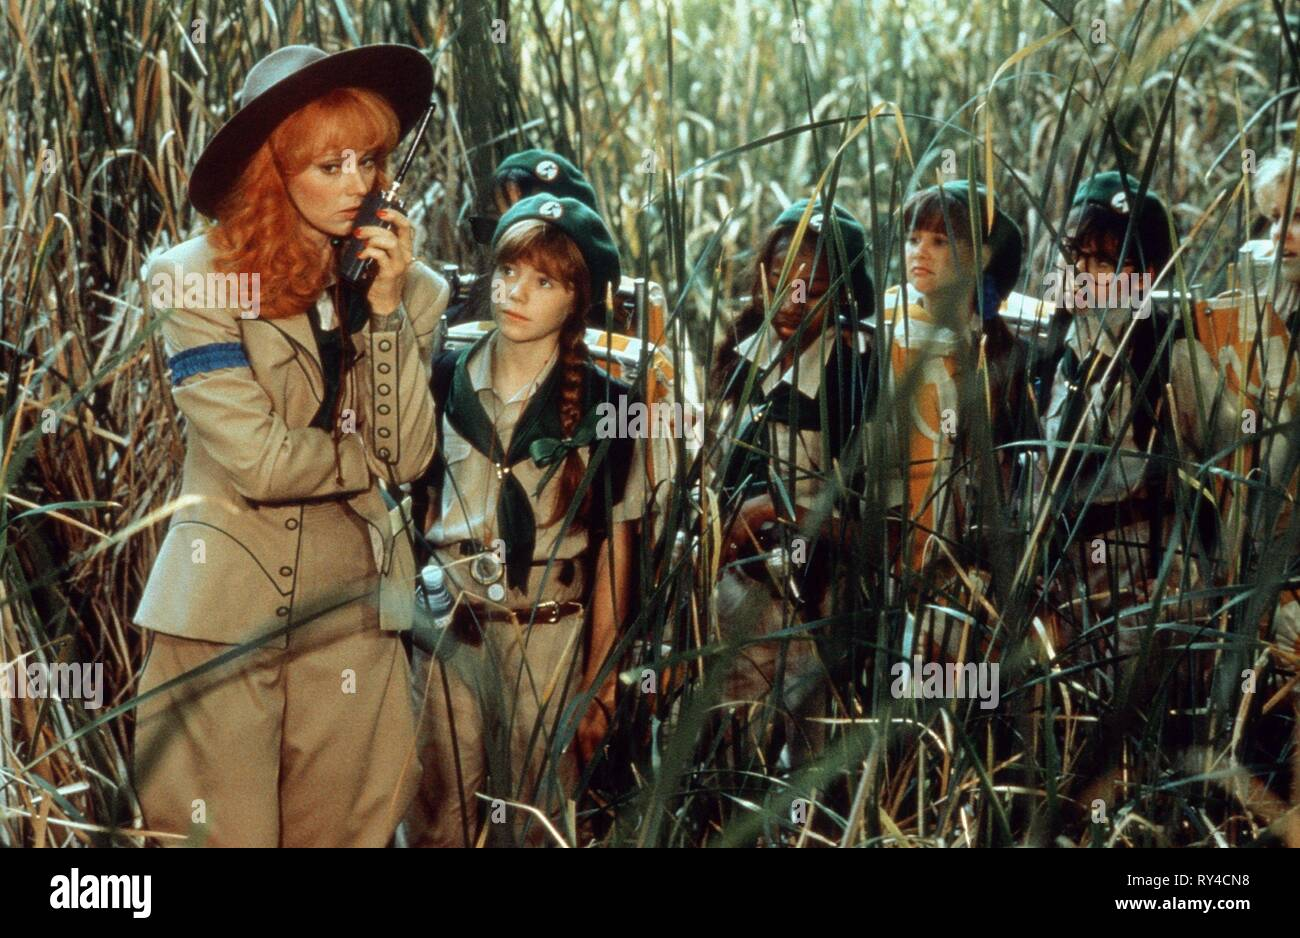 SHELLEY LONG, TROOP BEVERLY HILLS, 1989 - Stock Image